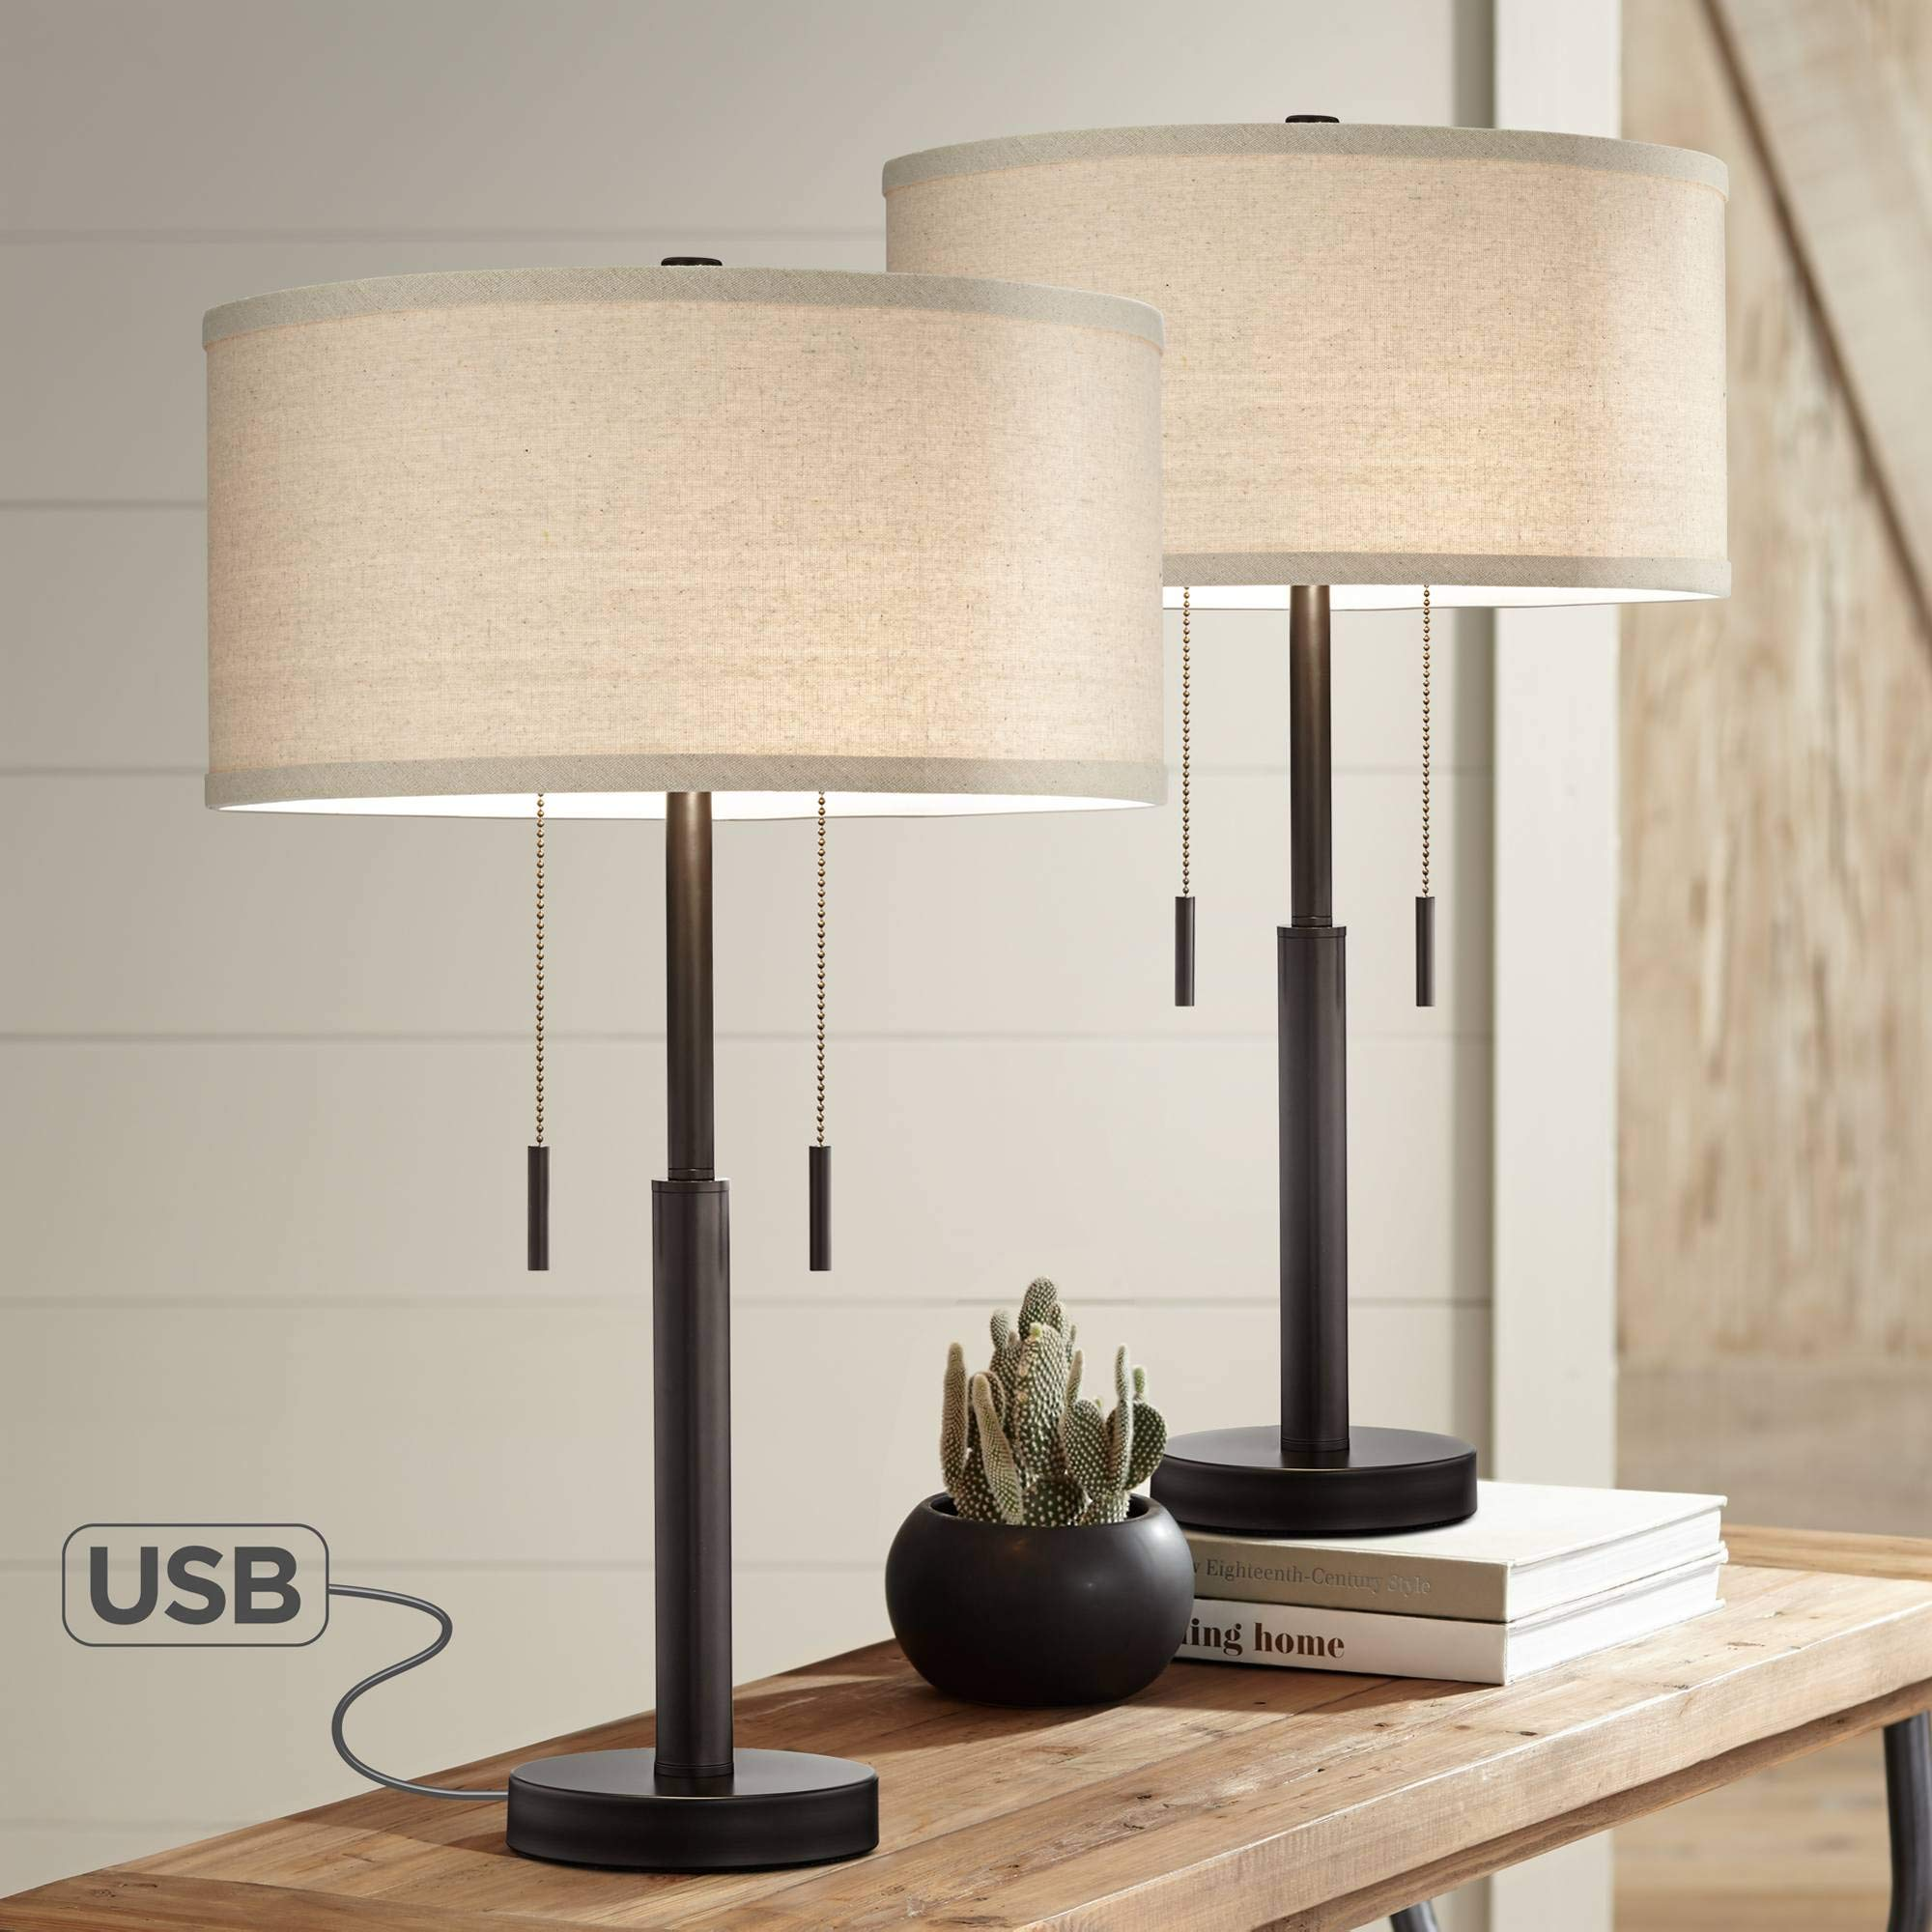 Bernie Industrial Table Lamps Set of 2 with Hotel Style USB Charging Port Rich Bronze Drum Shade for Living Room Family Bedroom - Franklin Iron Works